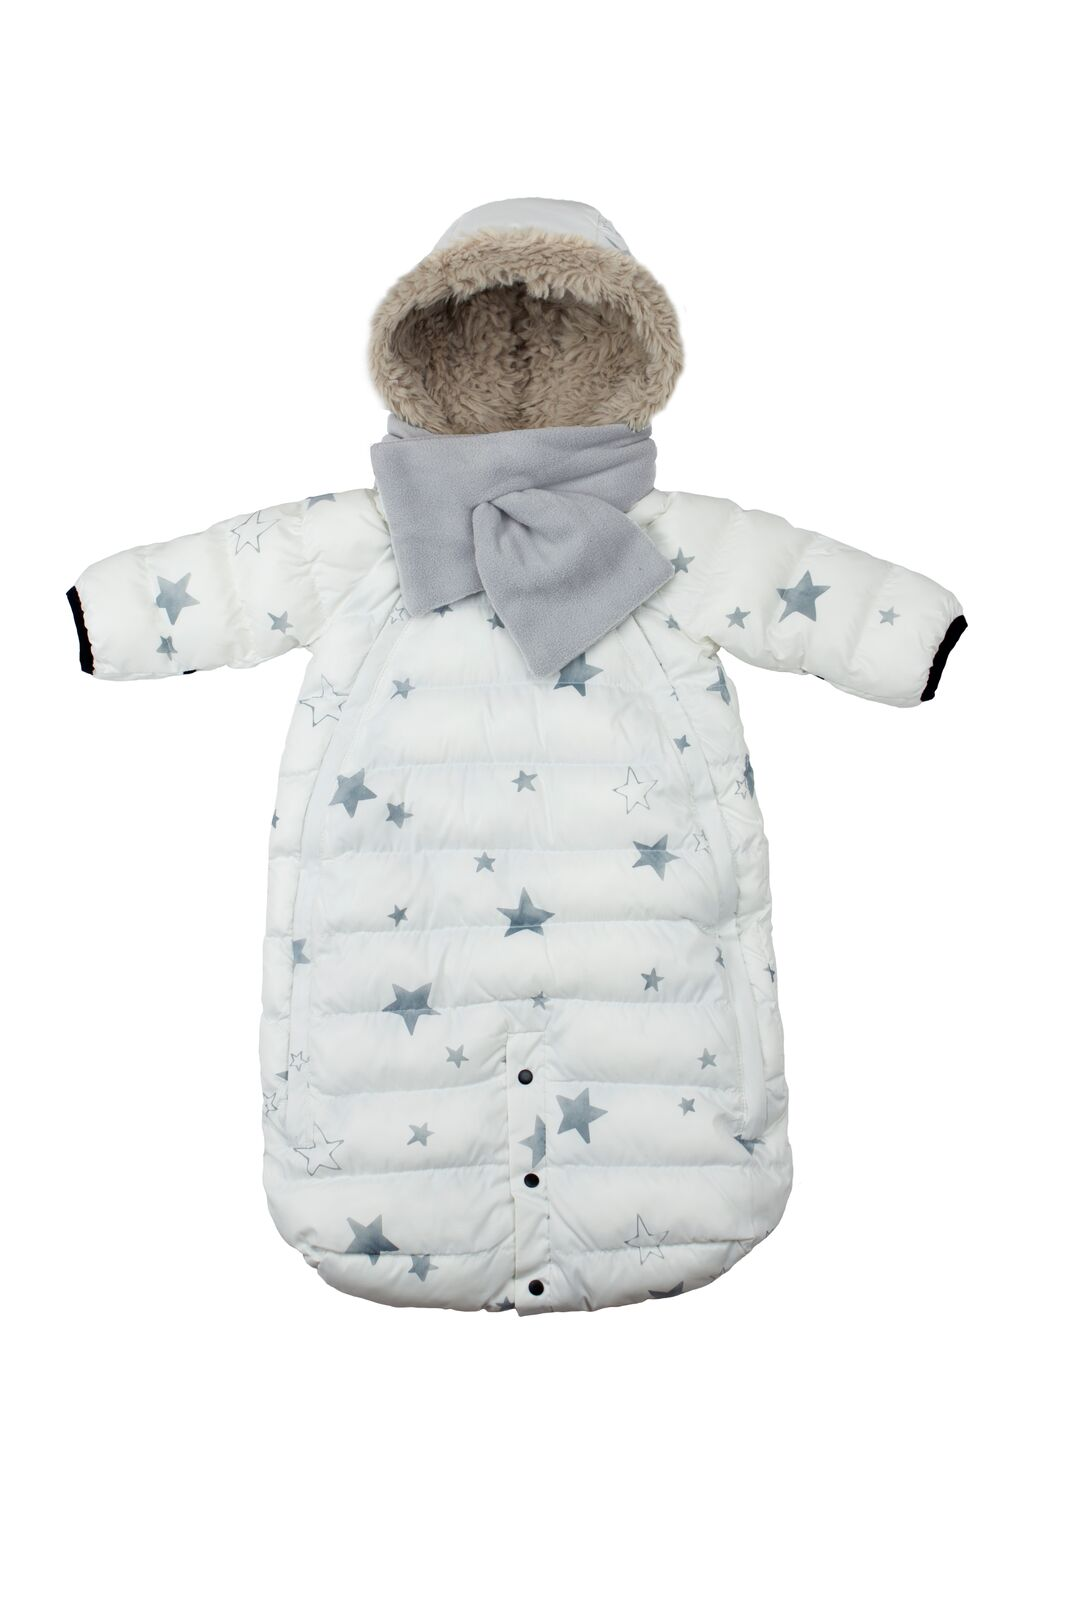 7AM Enfant Doudoune overal so šálom Print White Stars